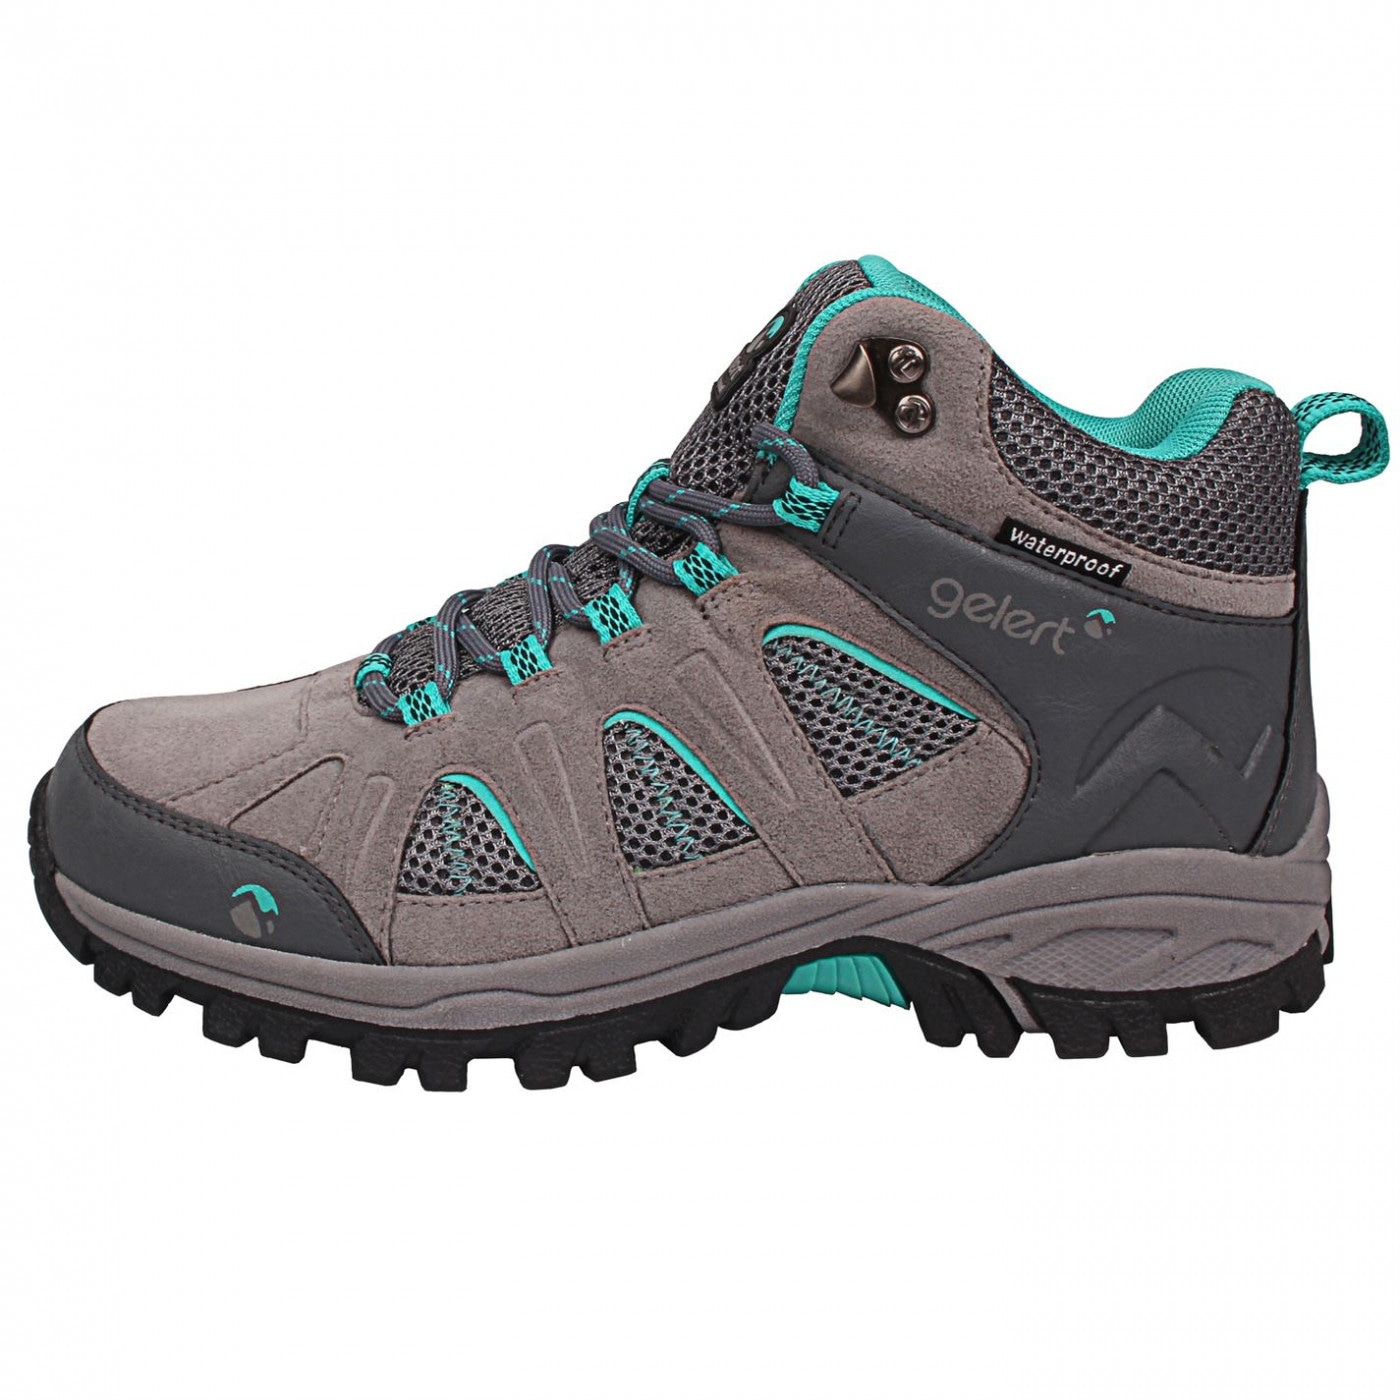 Gelert Tryfan Mid Waterproof Ladies